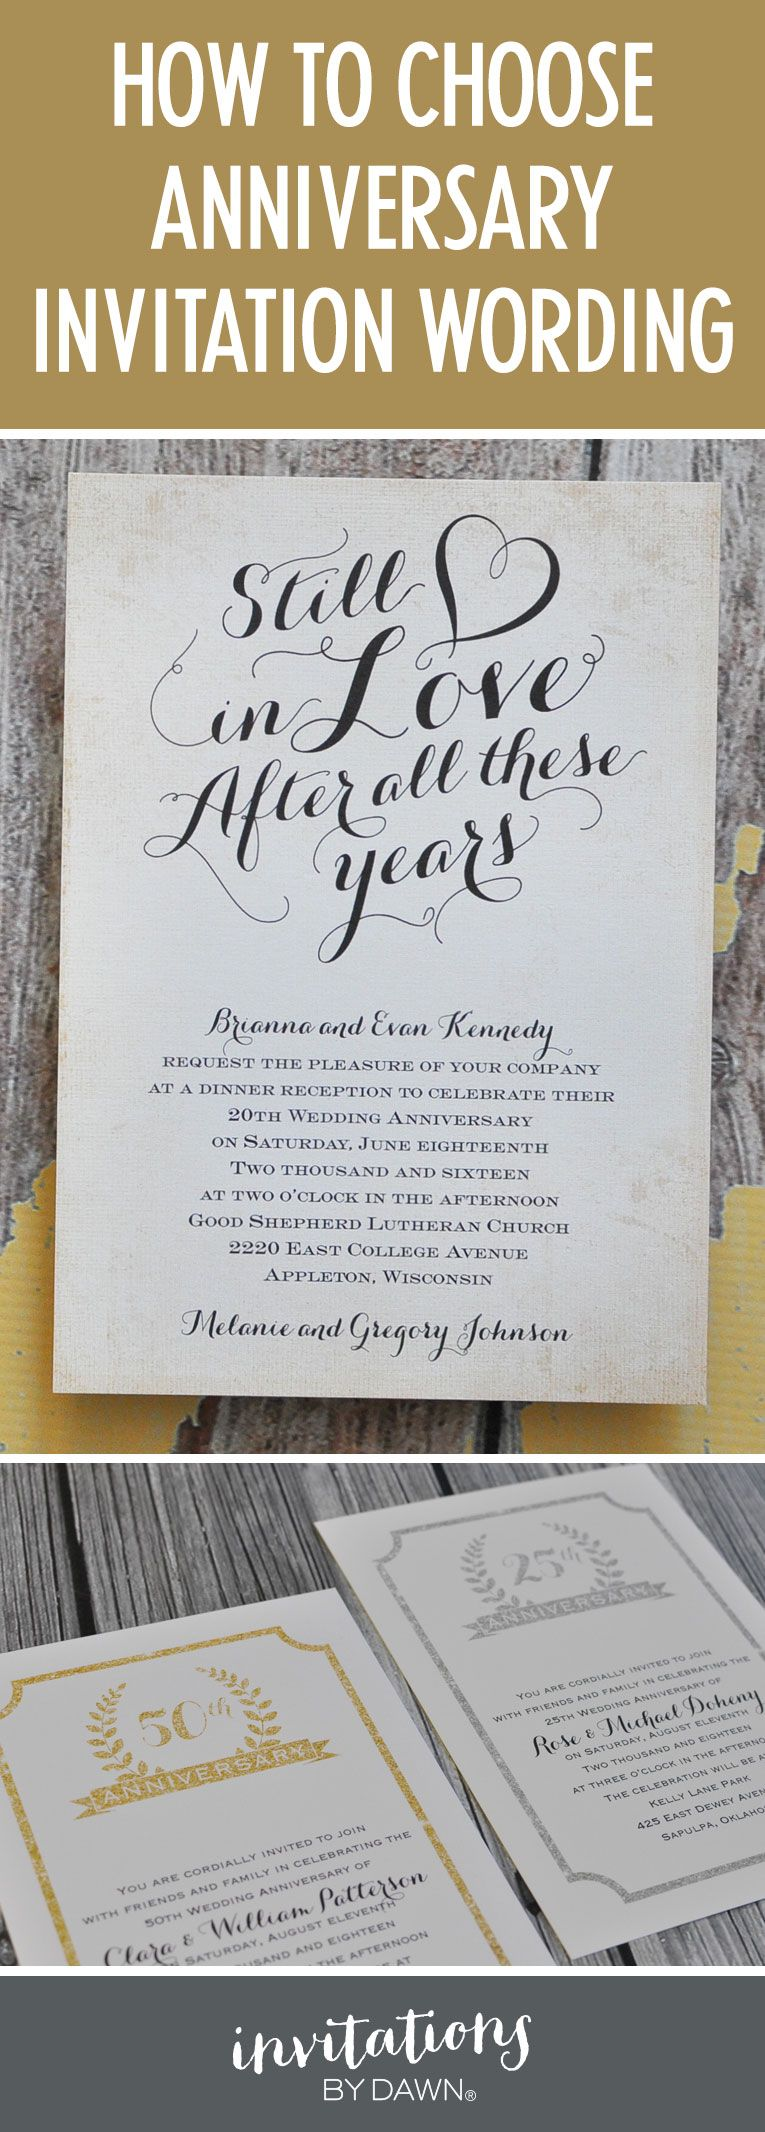 wedding renewal invitation ideas%0A   th golden wedding anniversary invitation wordings   Anniversary Invitation  Wordings   Pinterest   Invitation wording  Anniversary invitations and Find